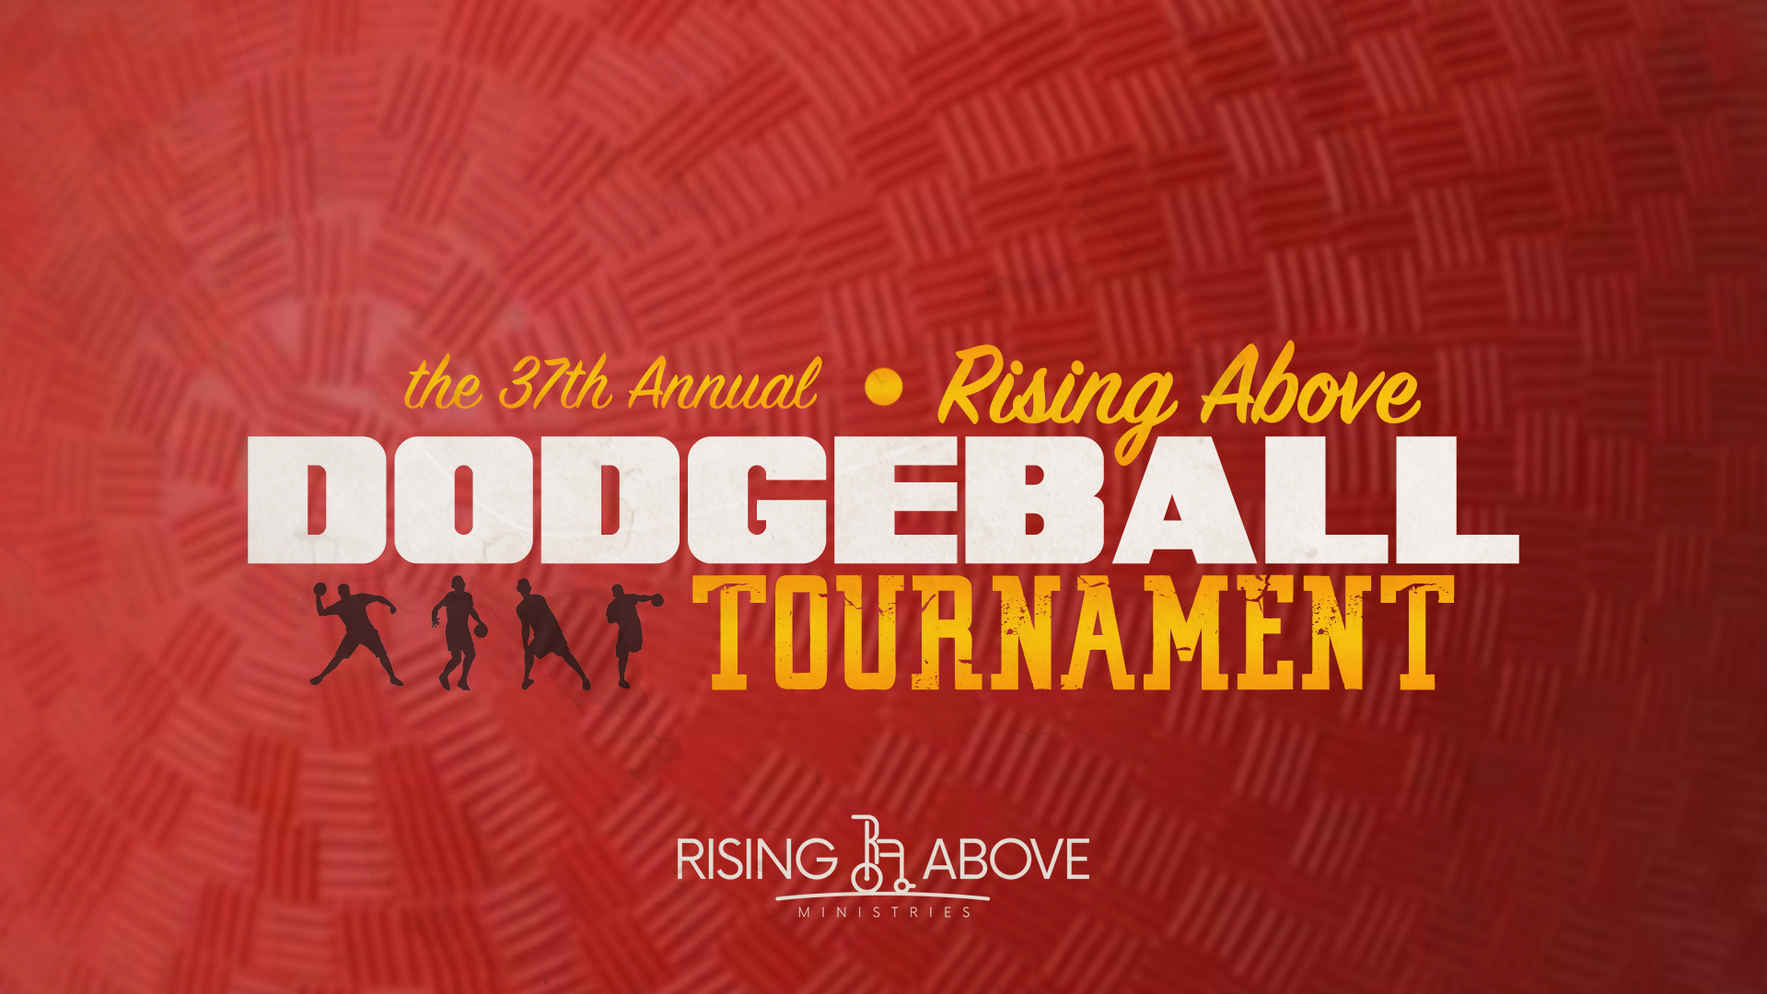 Donate now to become an event sponsor for the Cookeville Dodgeball Tournament! image